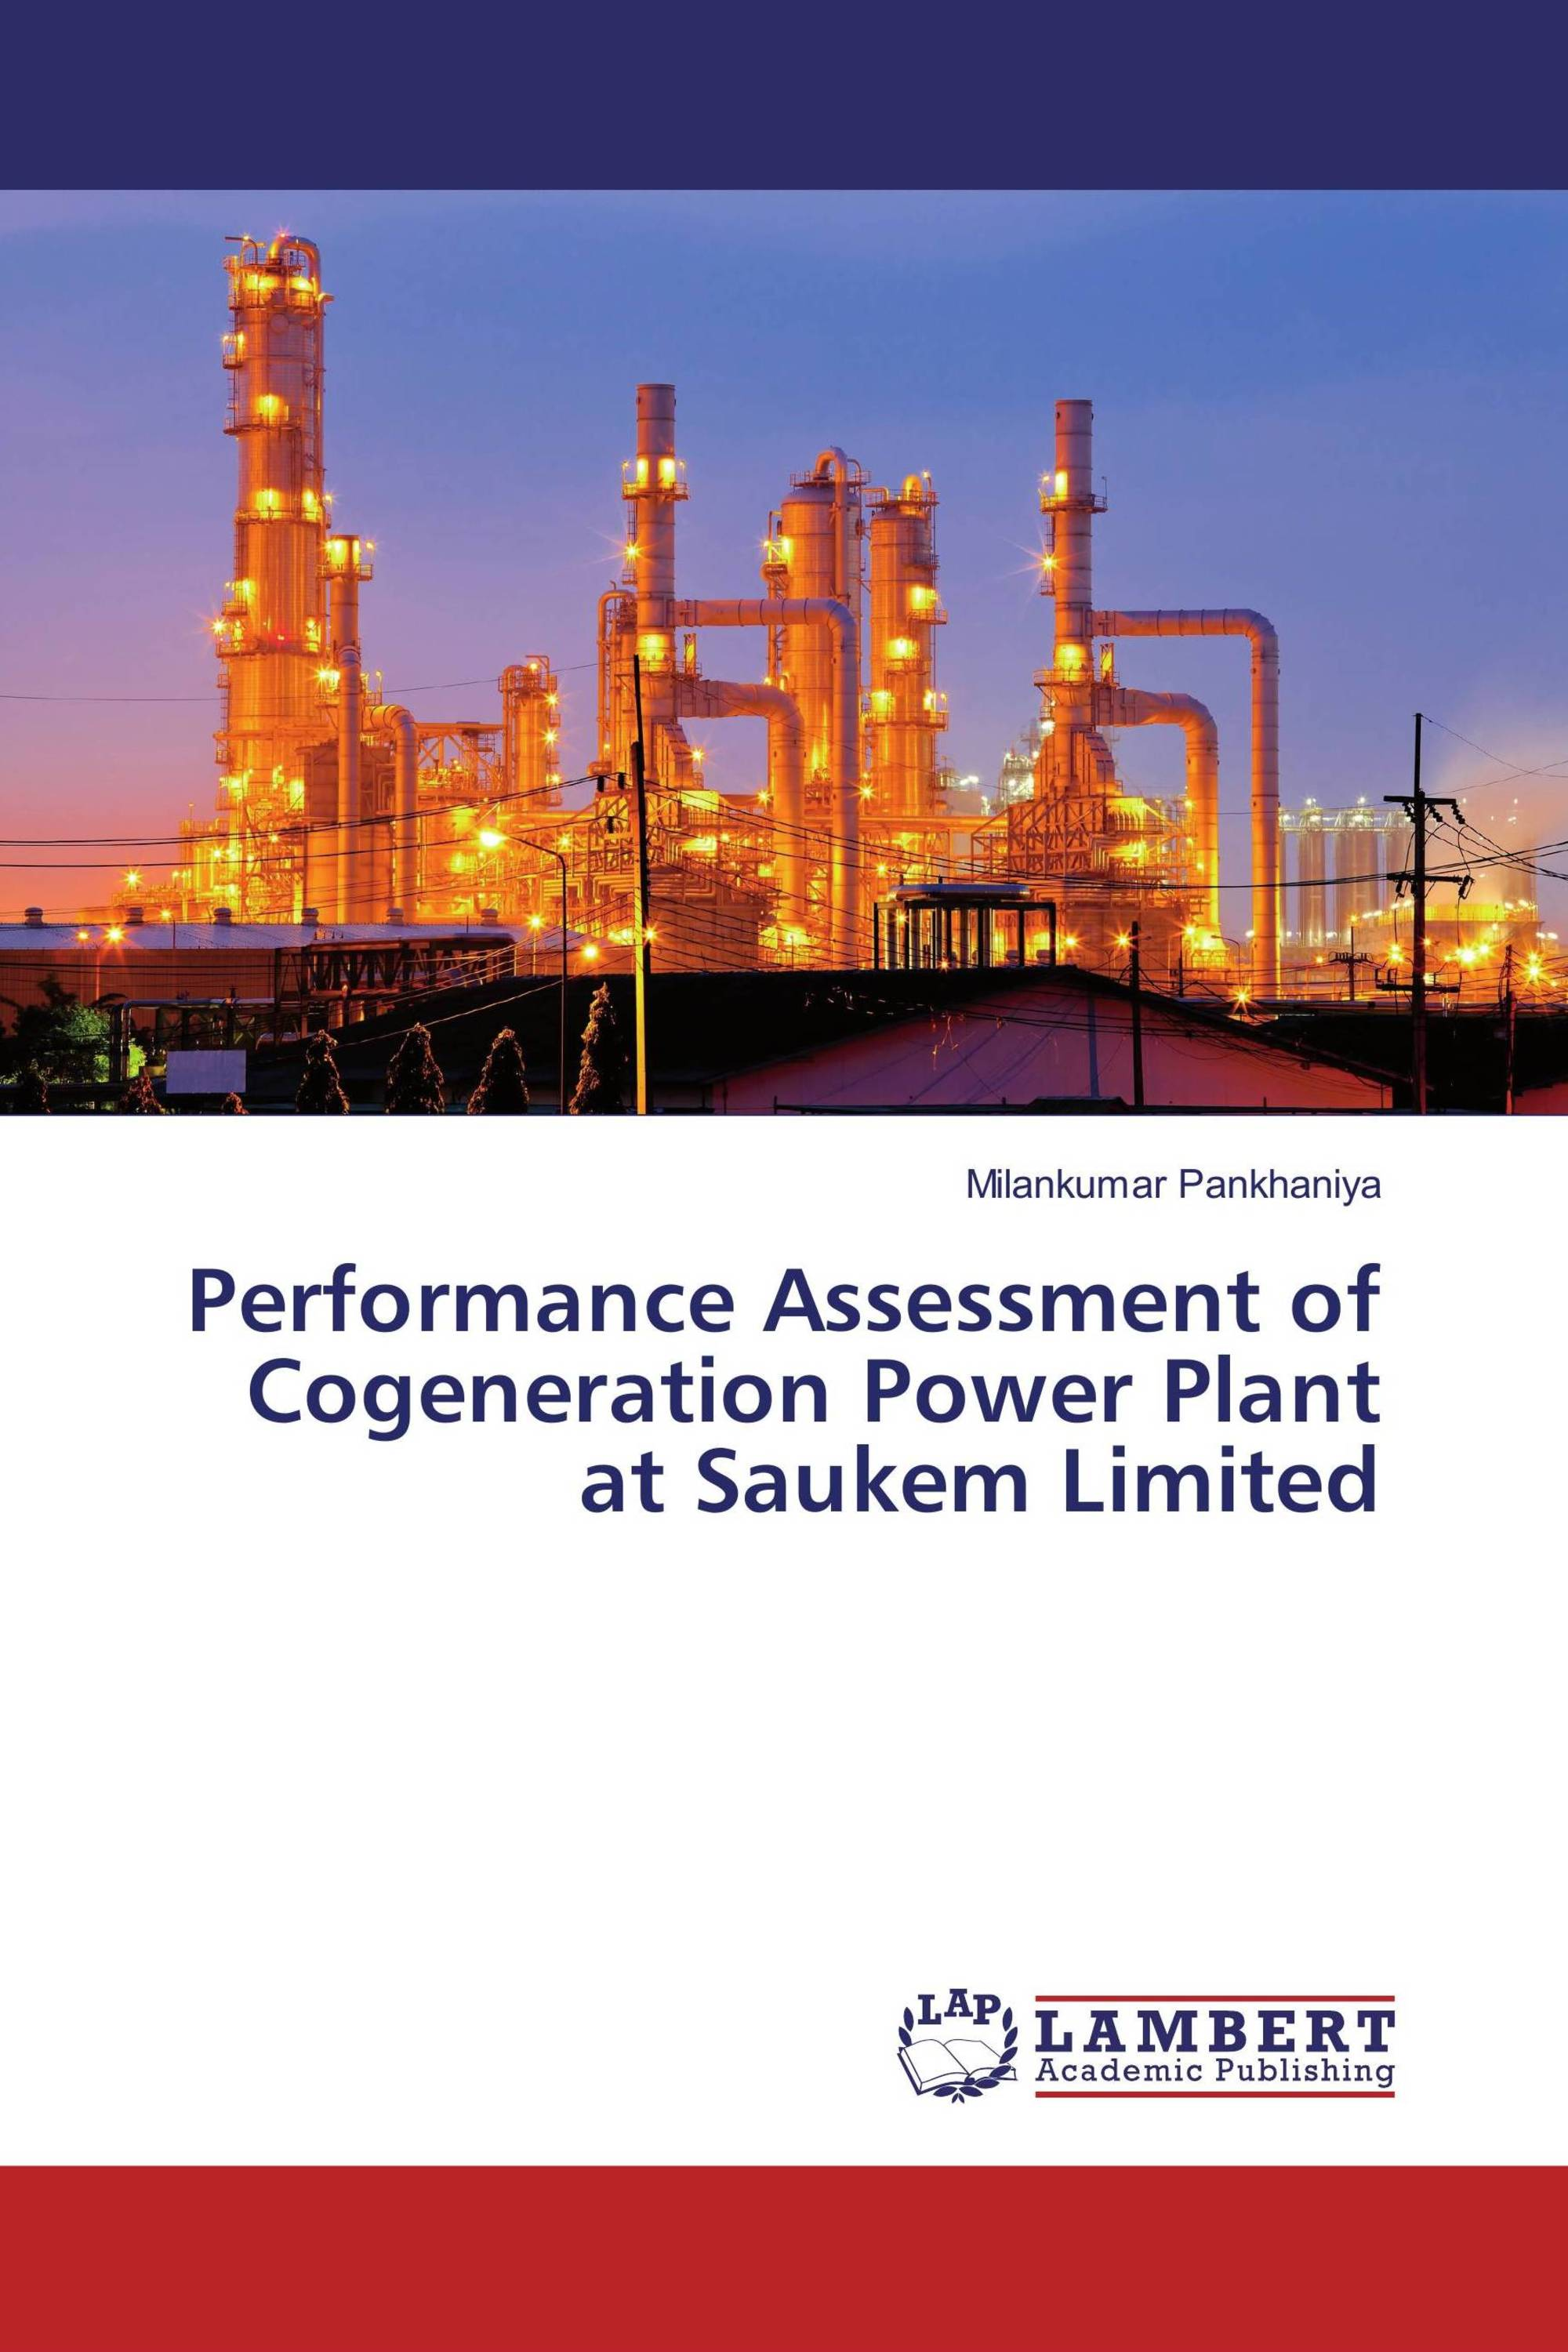 Performance Assessment of Cogeneration Power Plant at Saukem